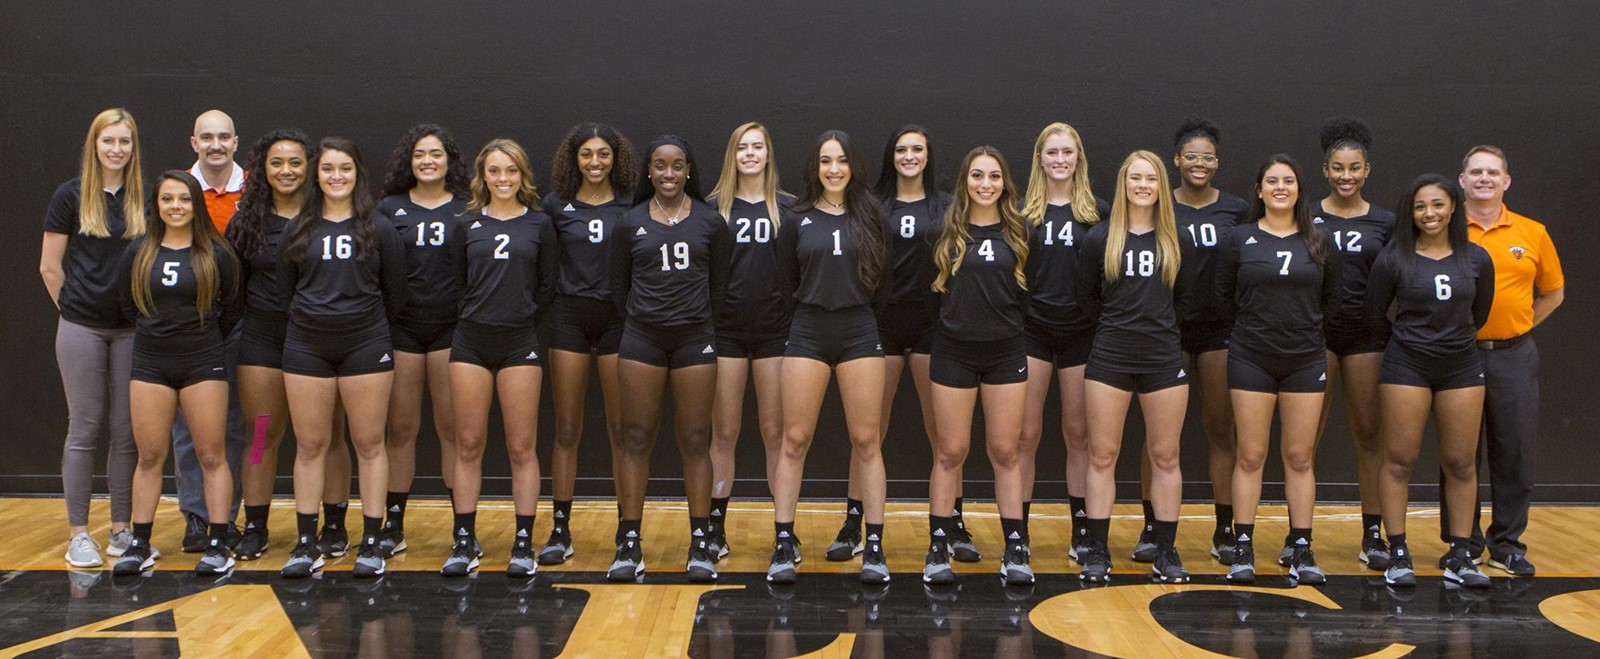 2018 Women S Volleyball Roster Utpb Athletics